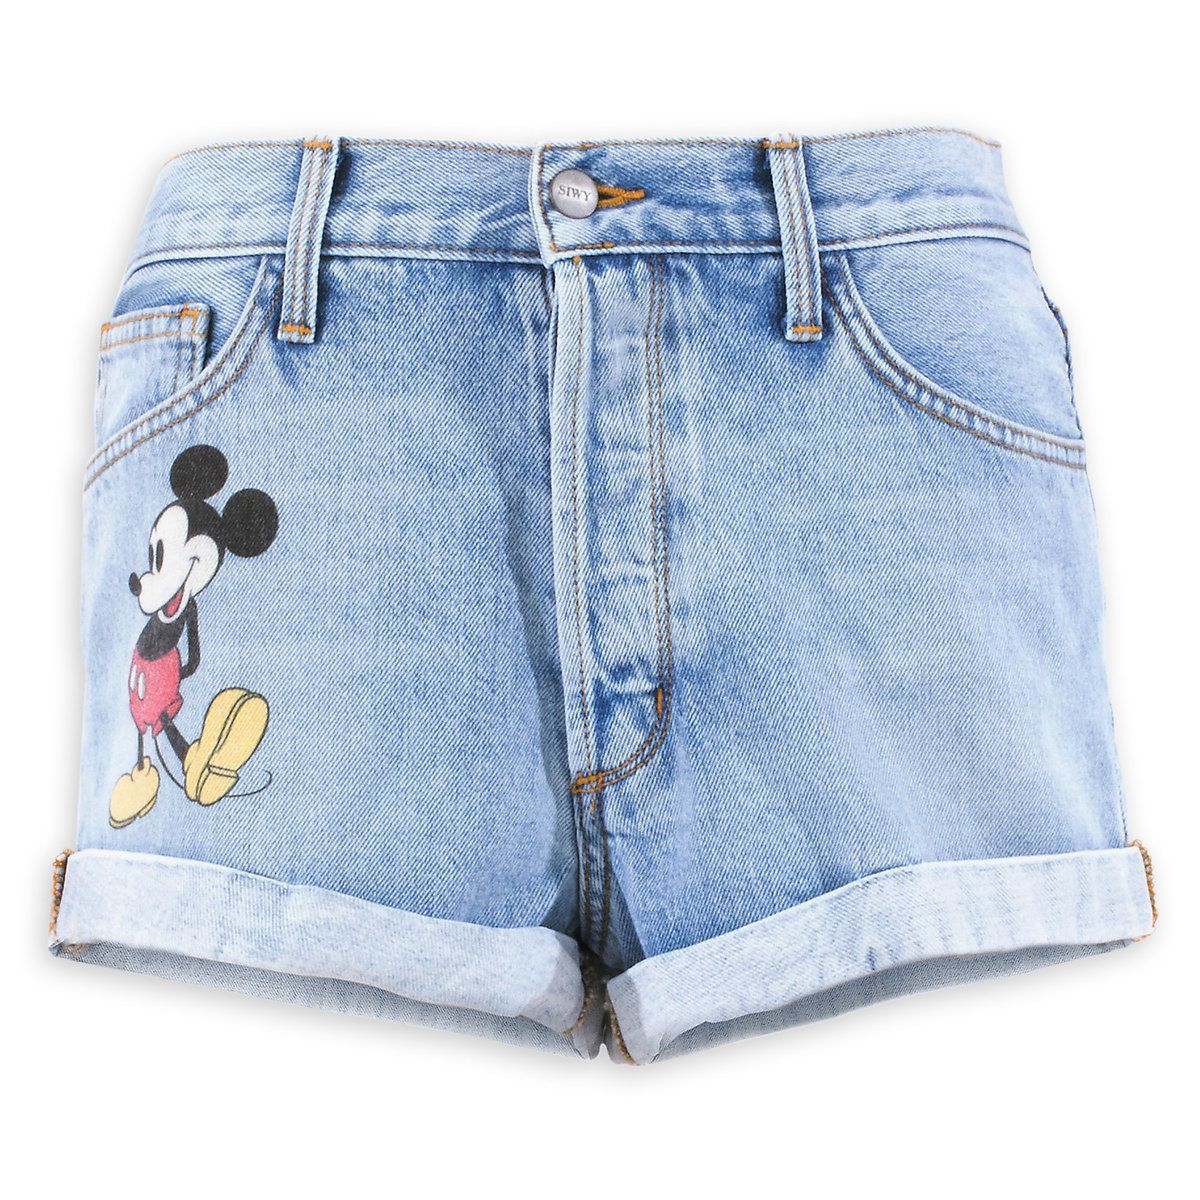 Disney Has a New Denim Collection, and I Want it All